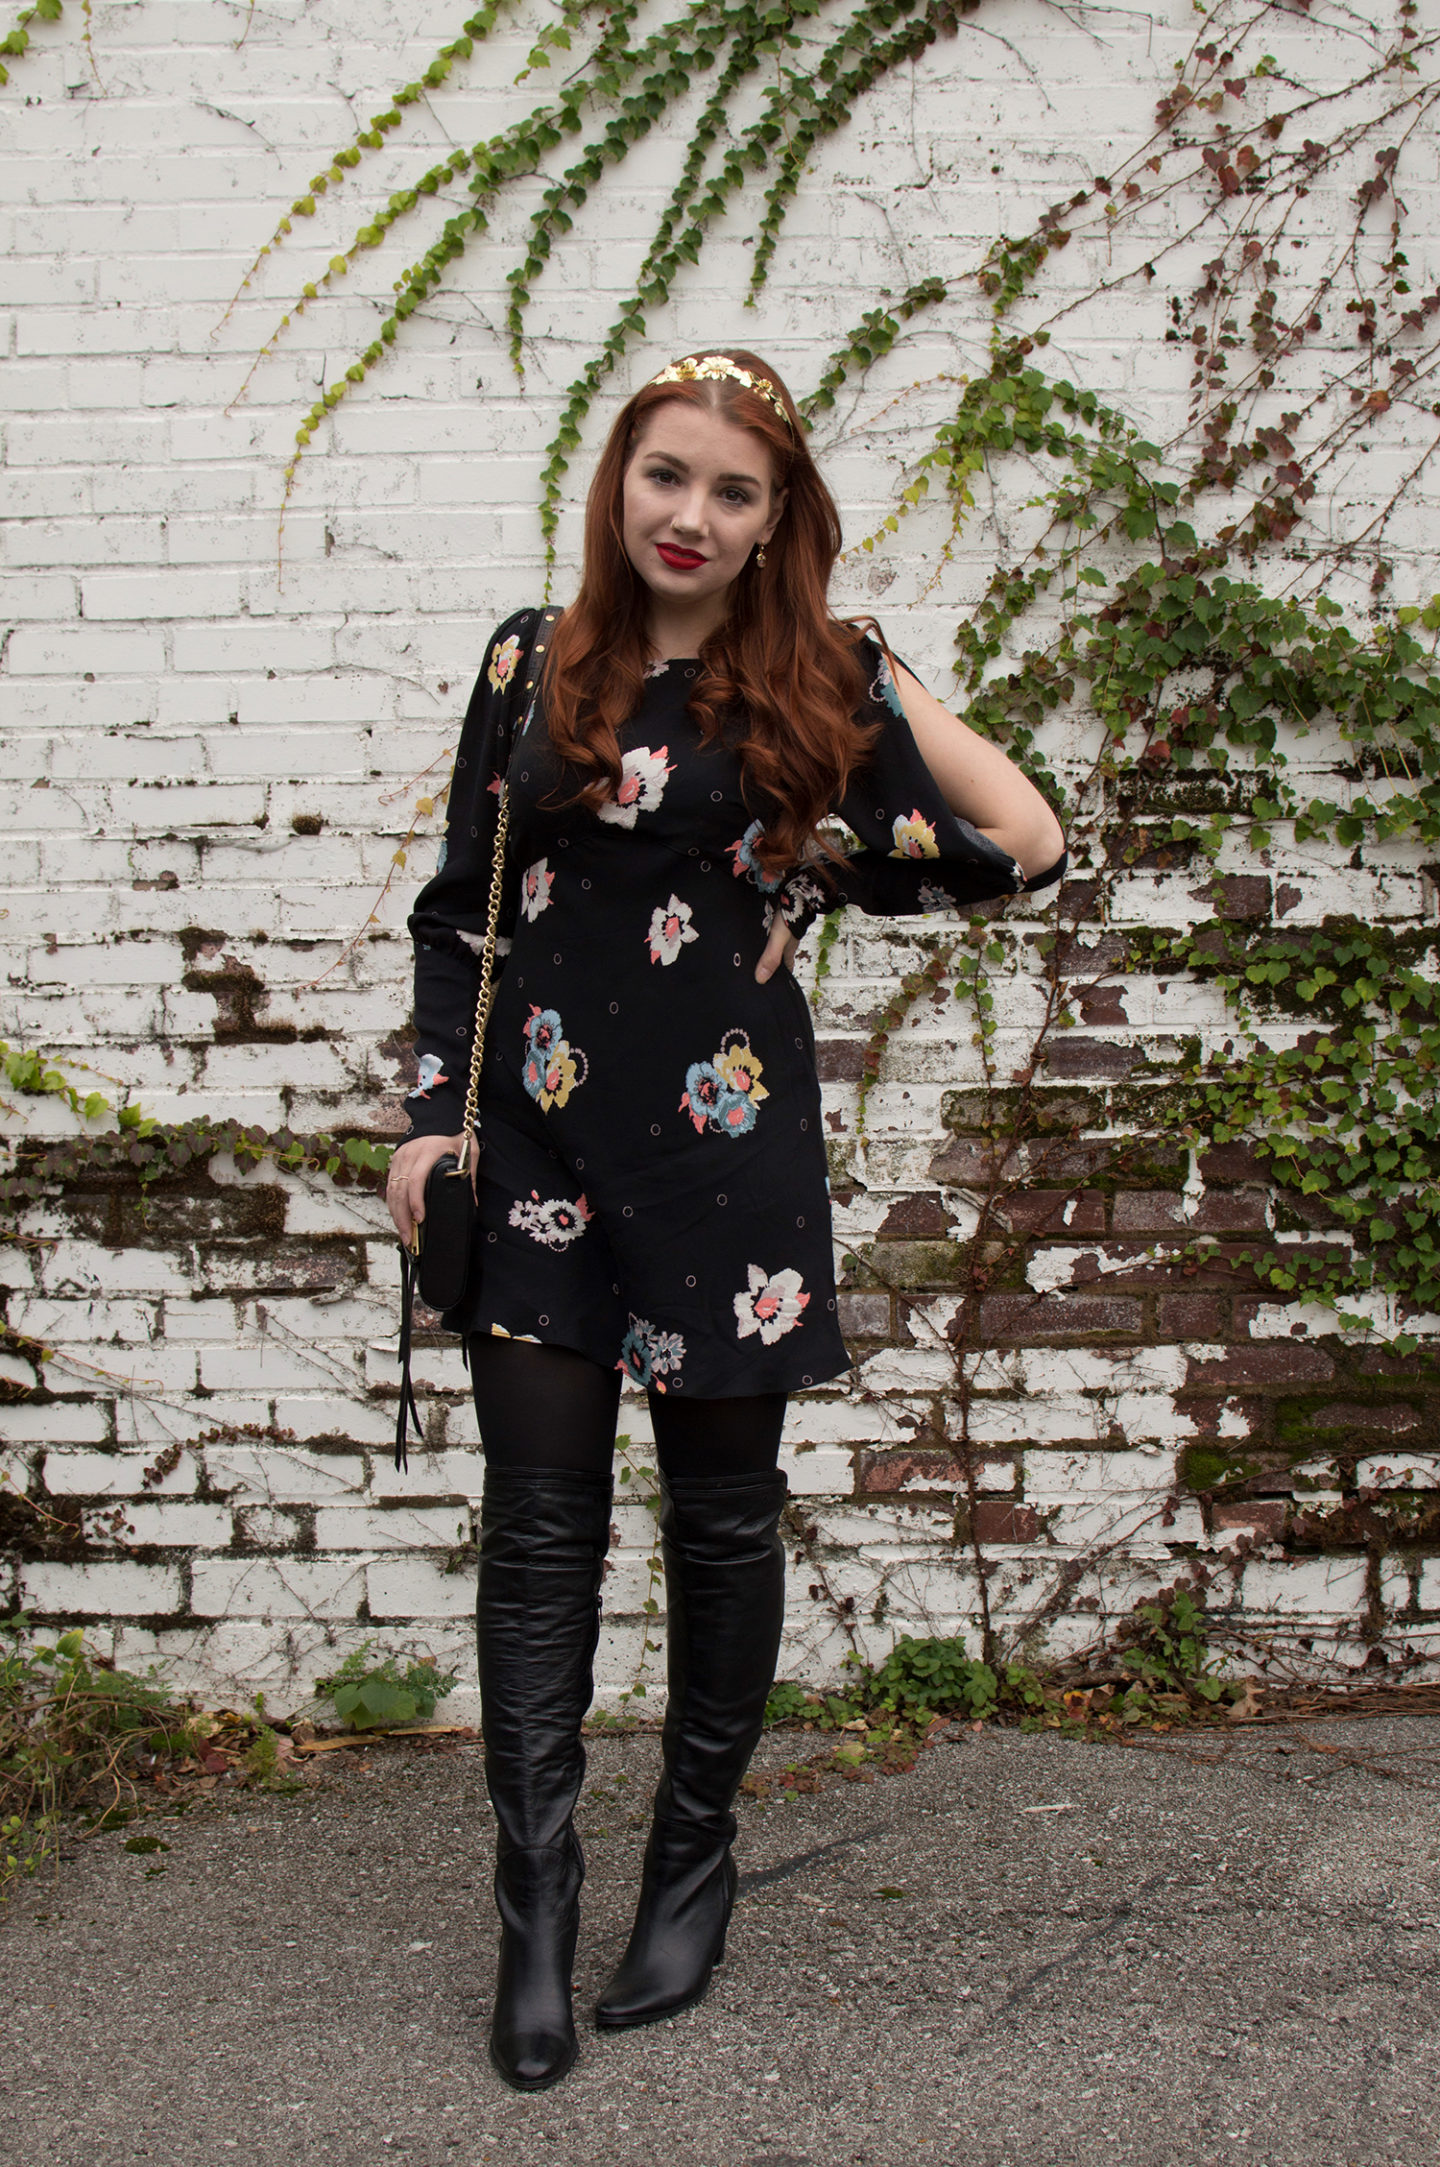 Holiday Dressing: Floral Party Dress + Thigh-High Boots